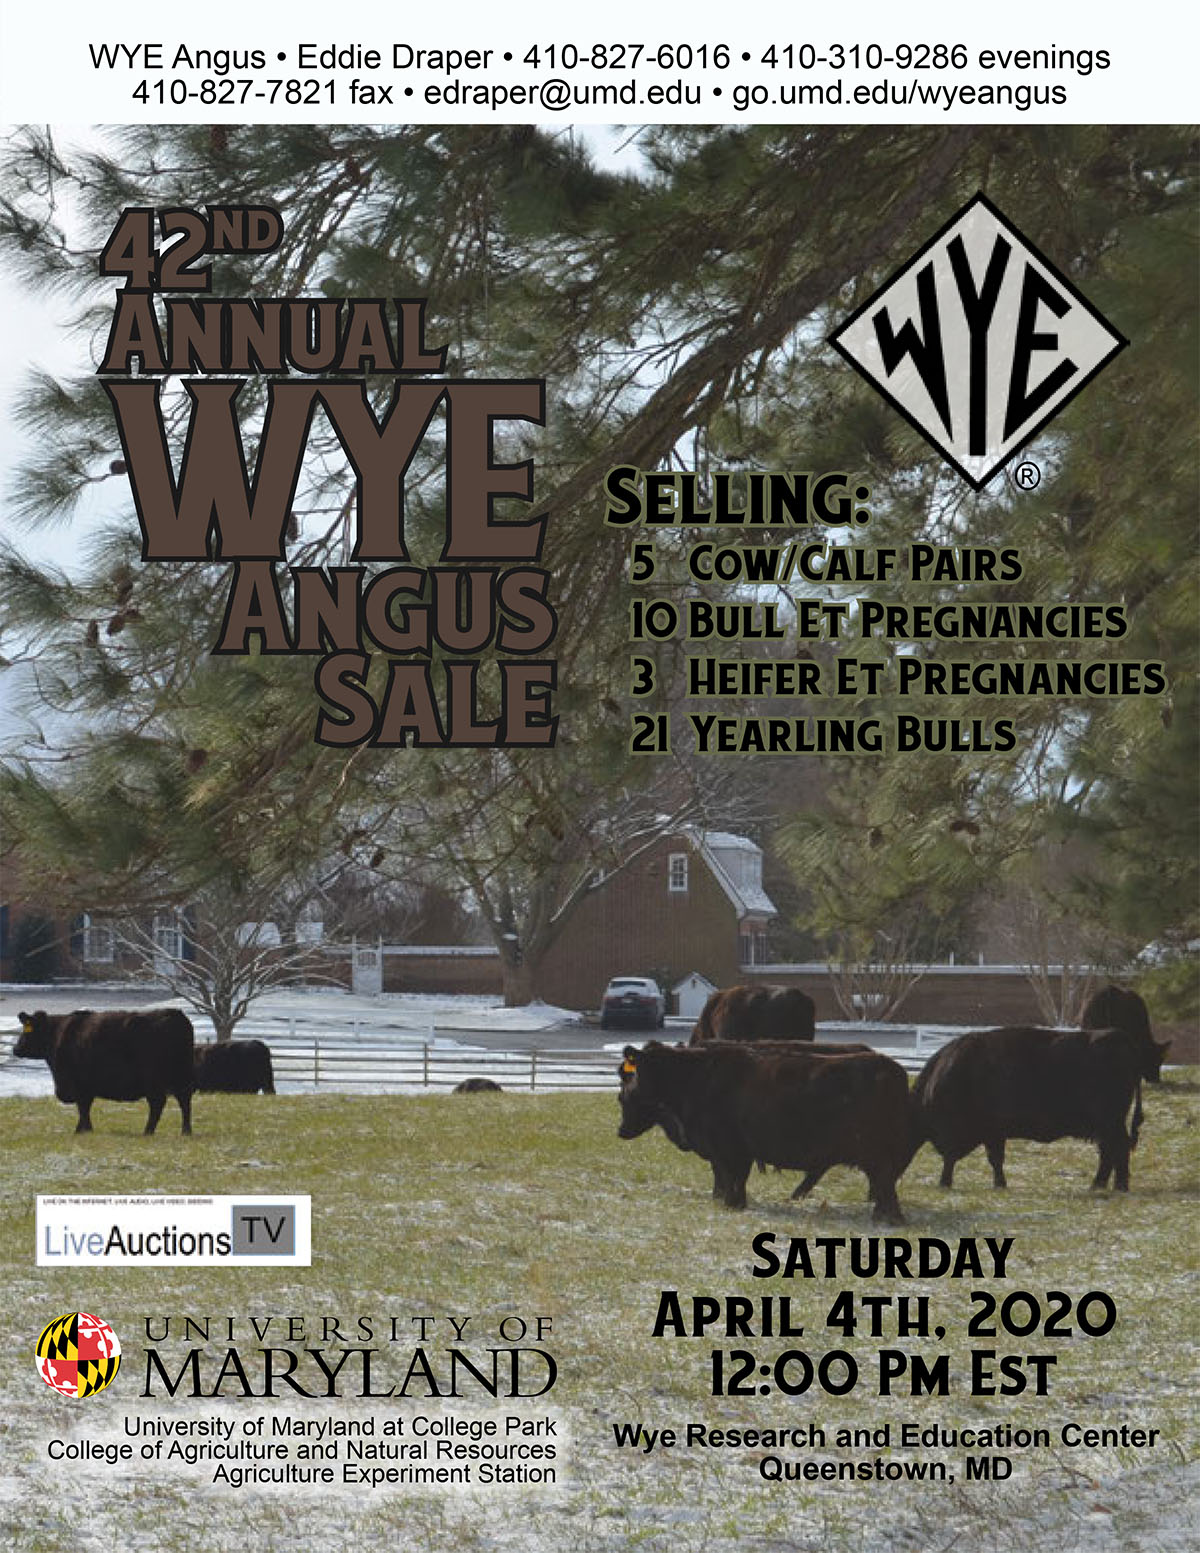 42nd Annual Wye Angus Sale